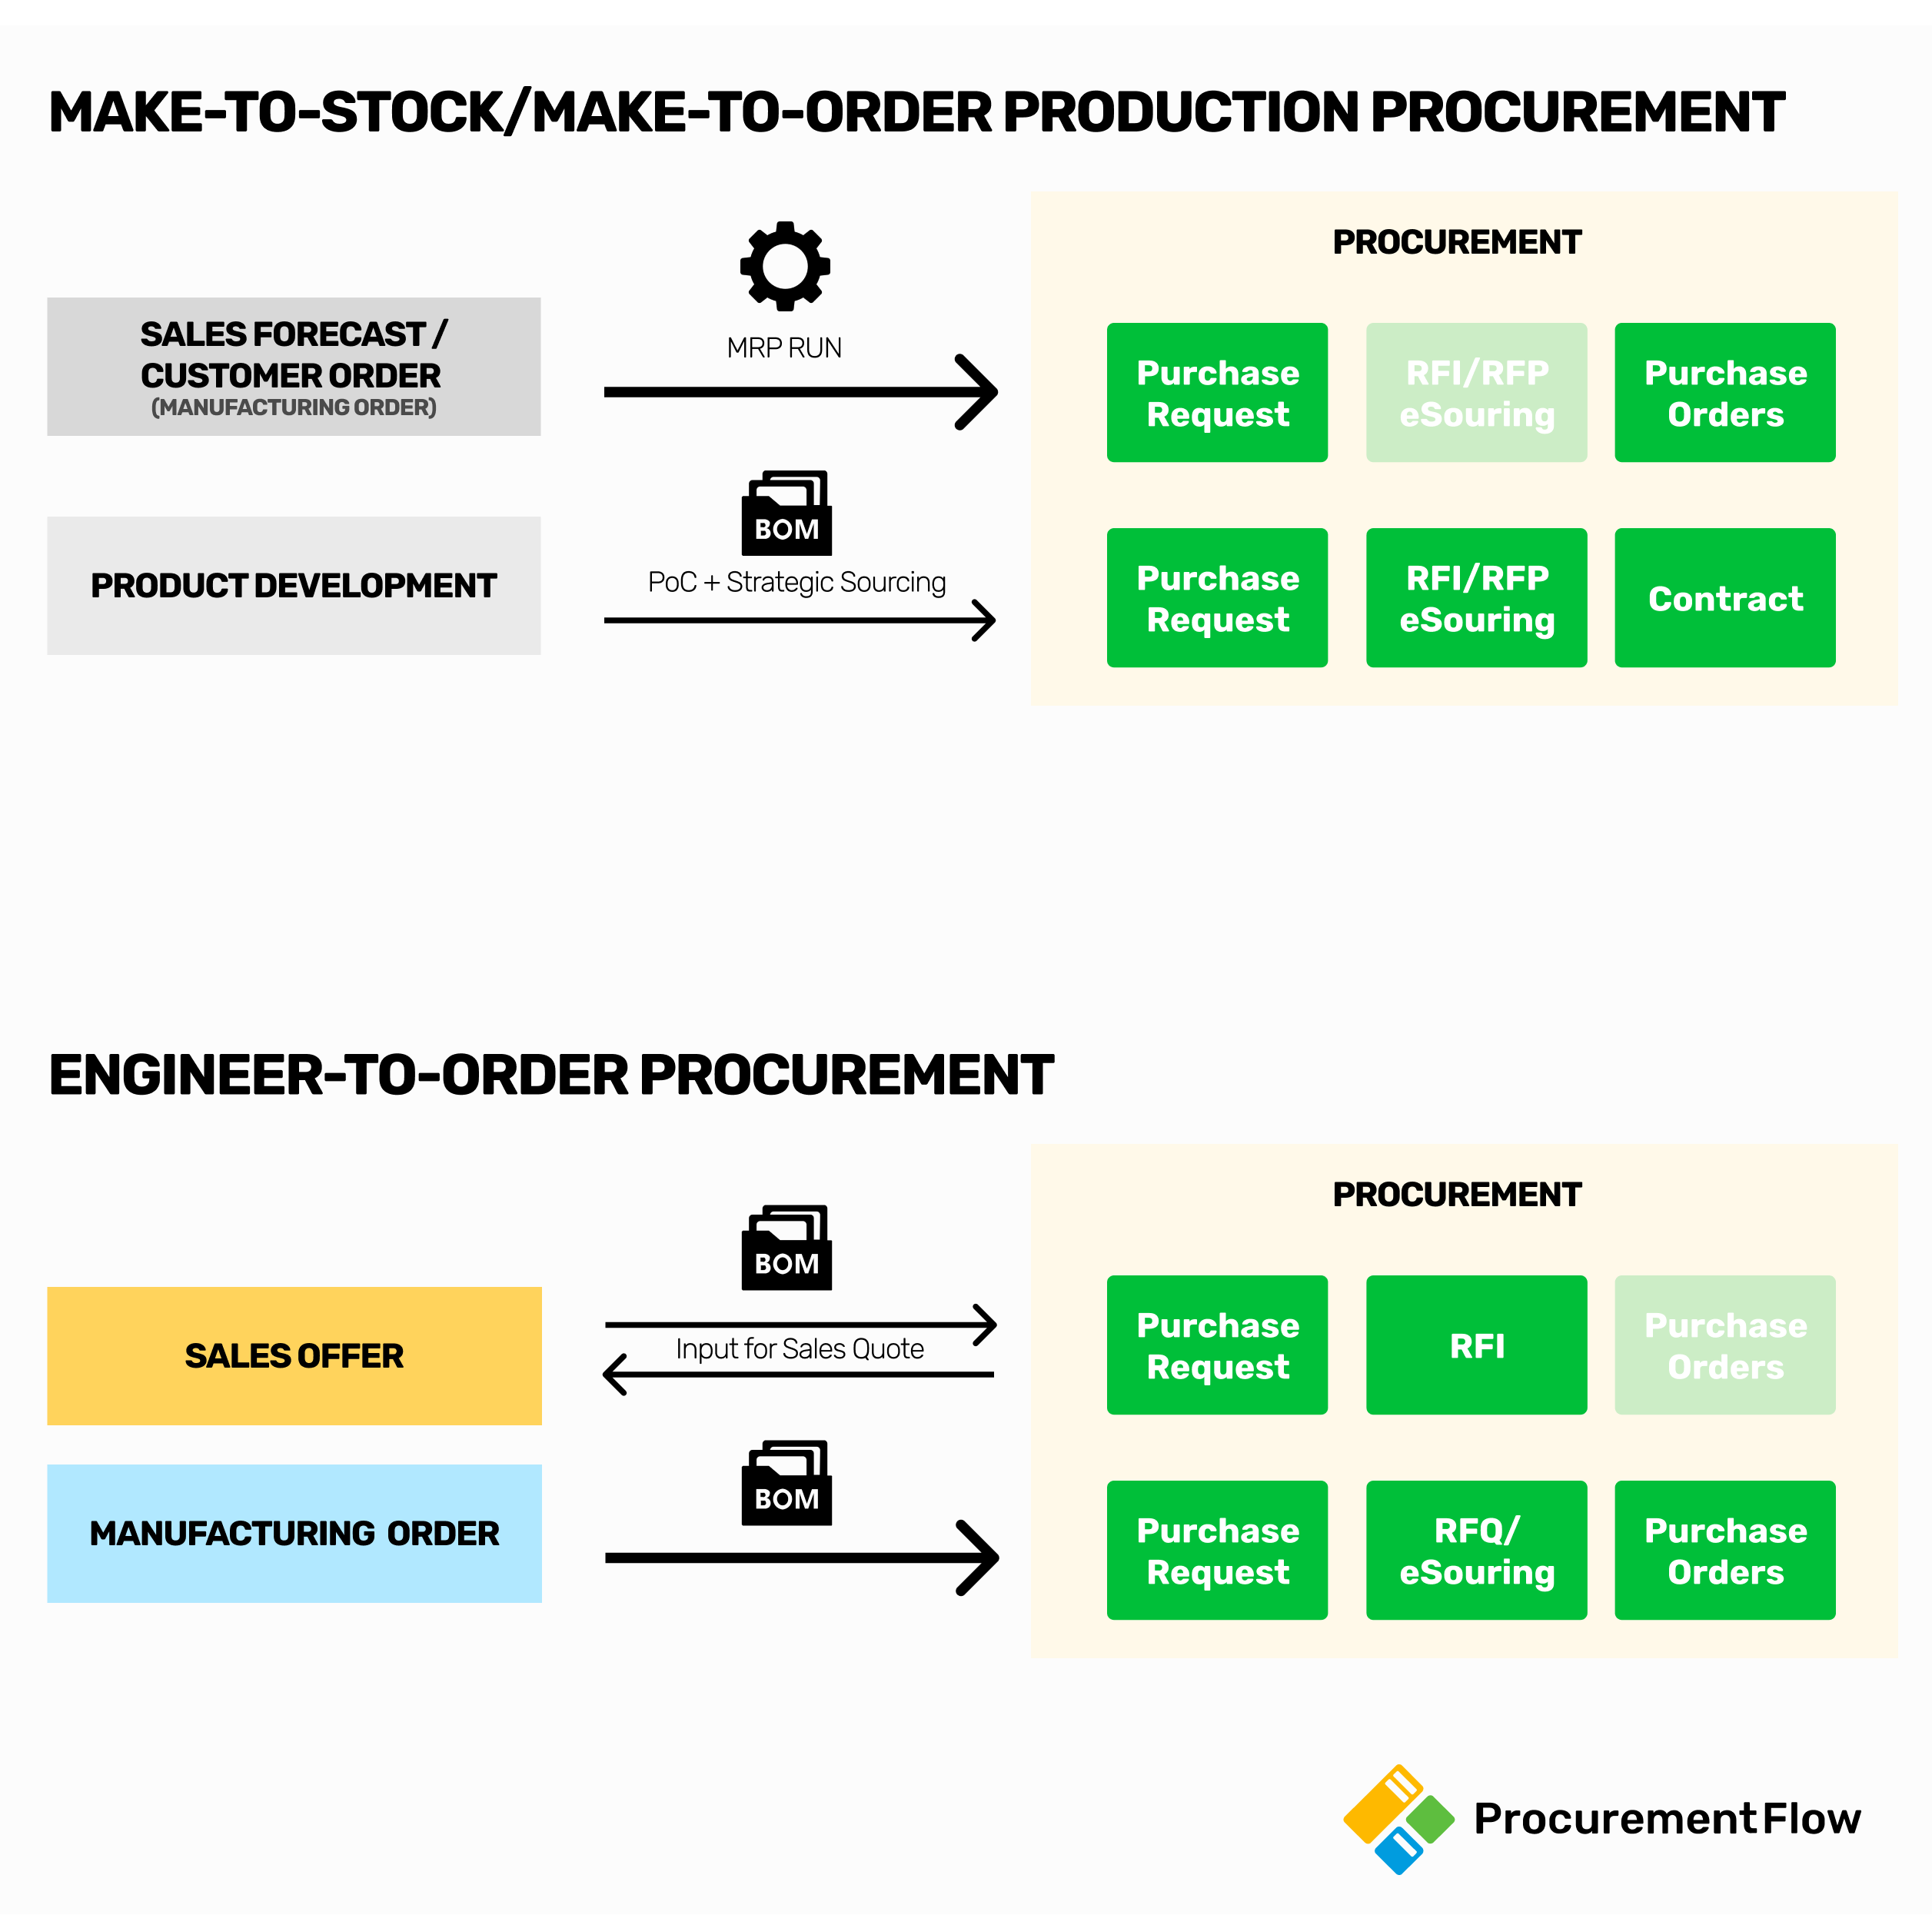 Manufacturing Procurement types - Make-to-Stock - Make-to-Order - Engineer-to-Order